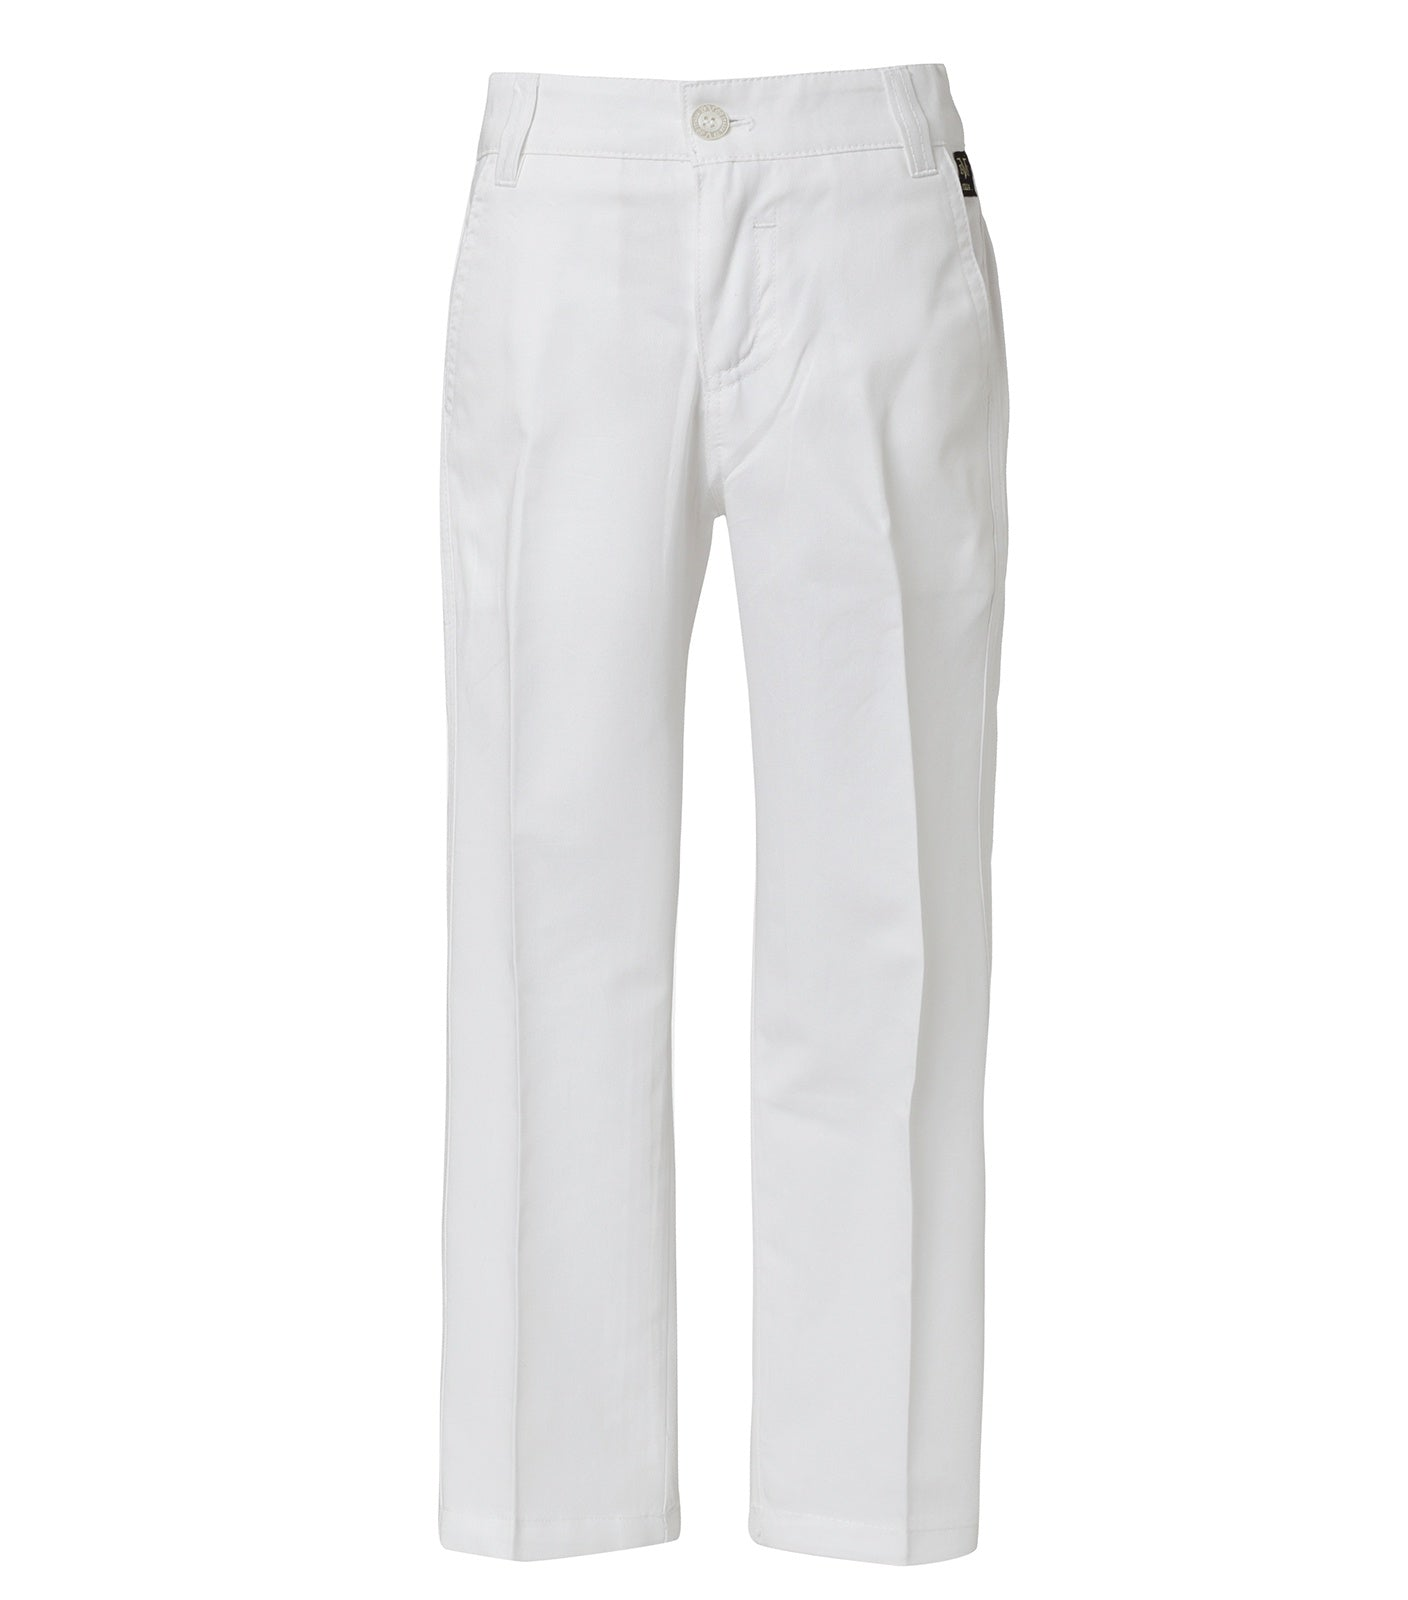 White Pants for boys